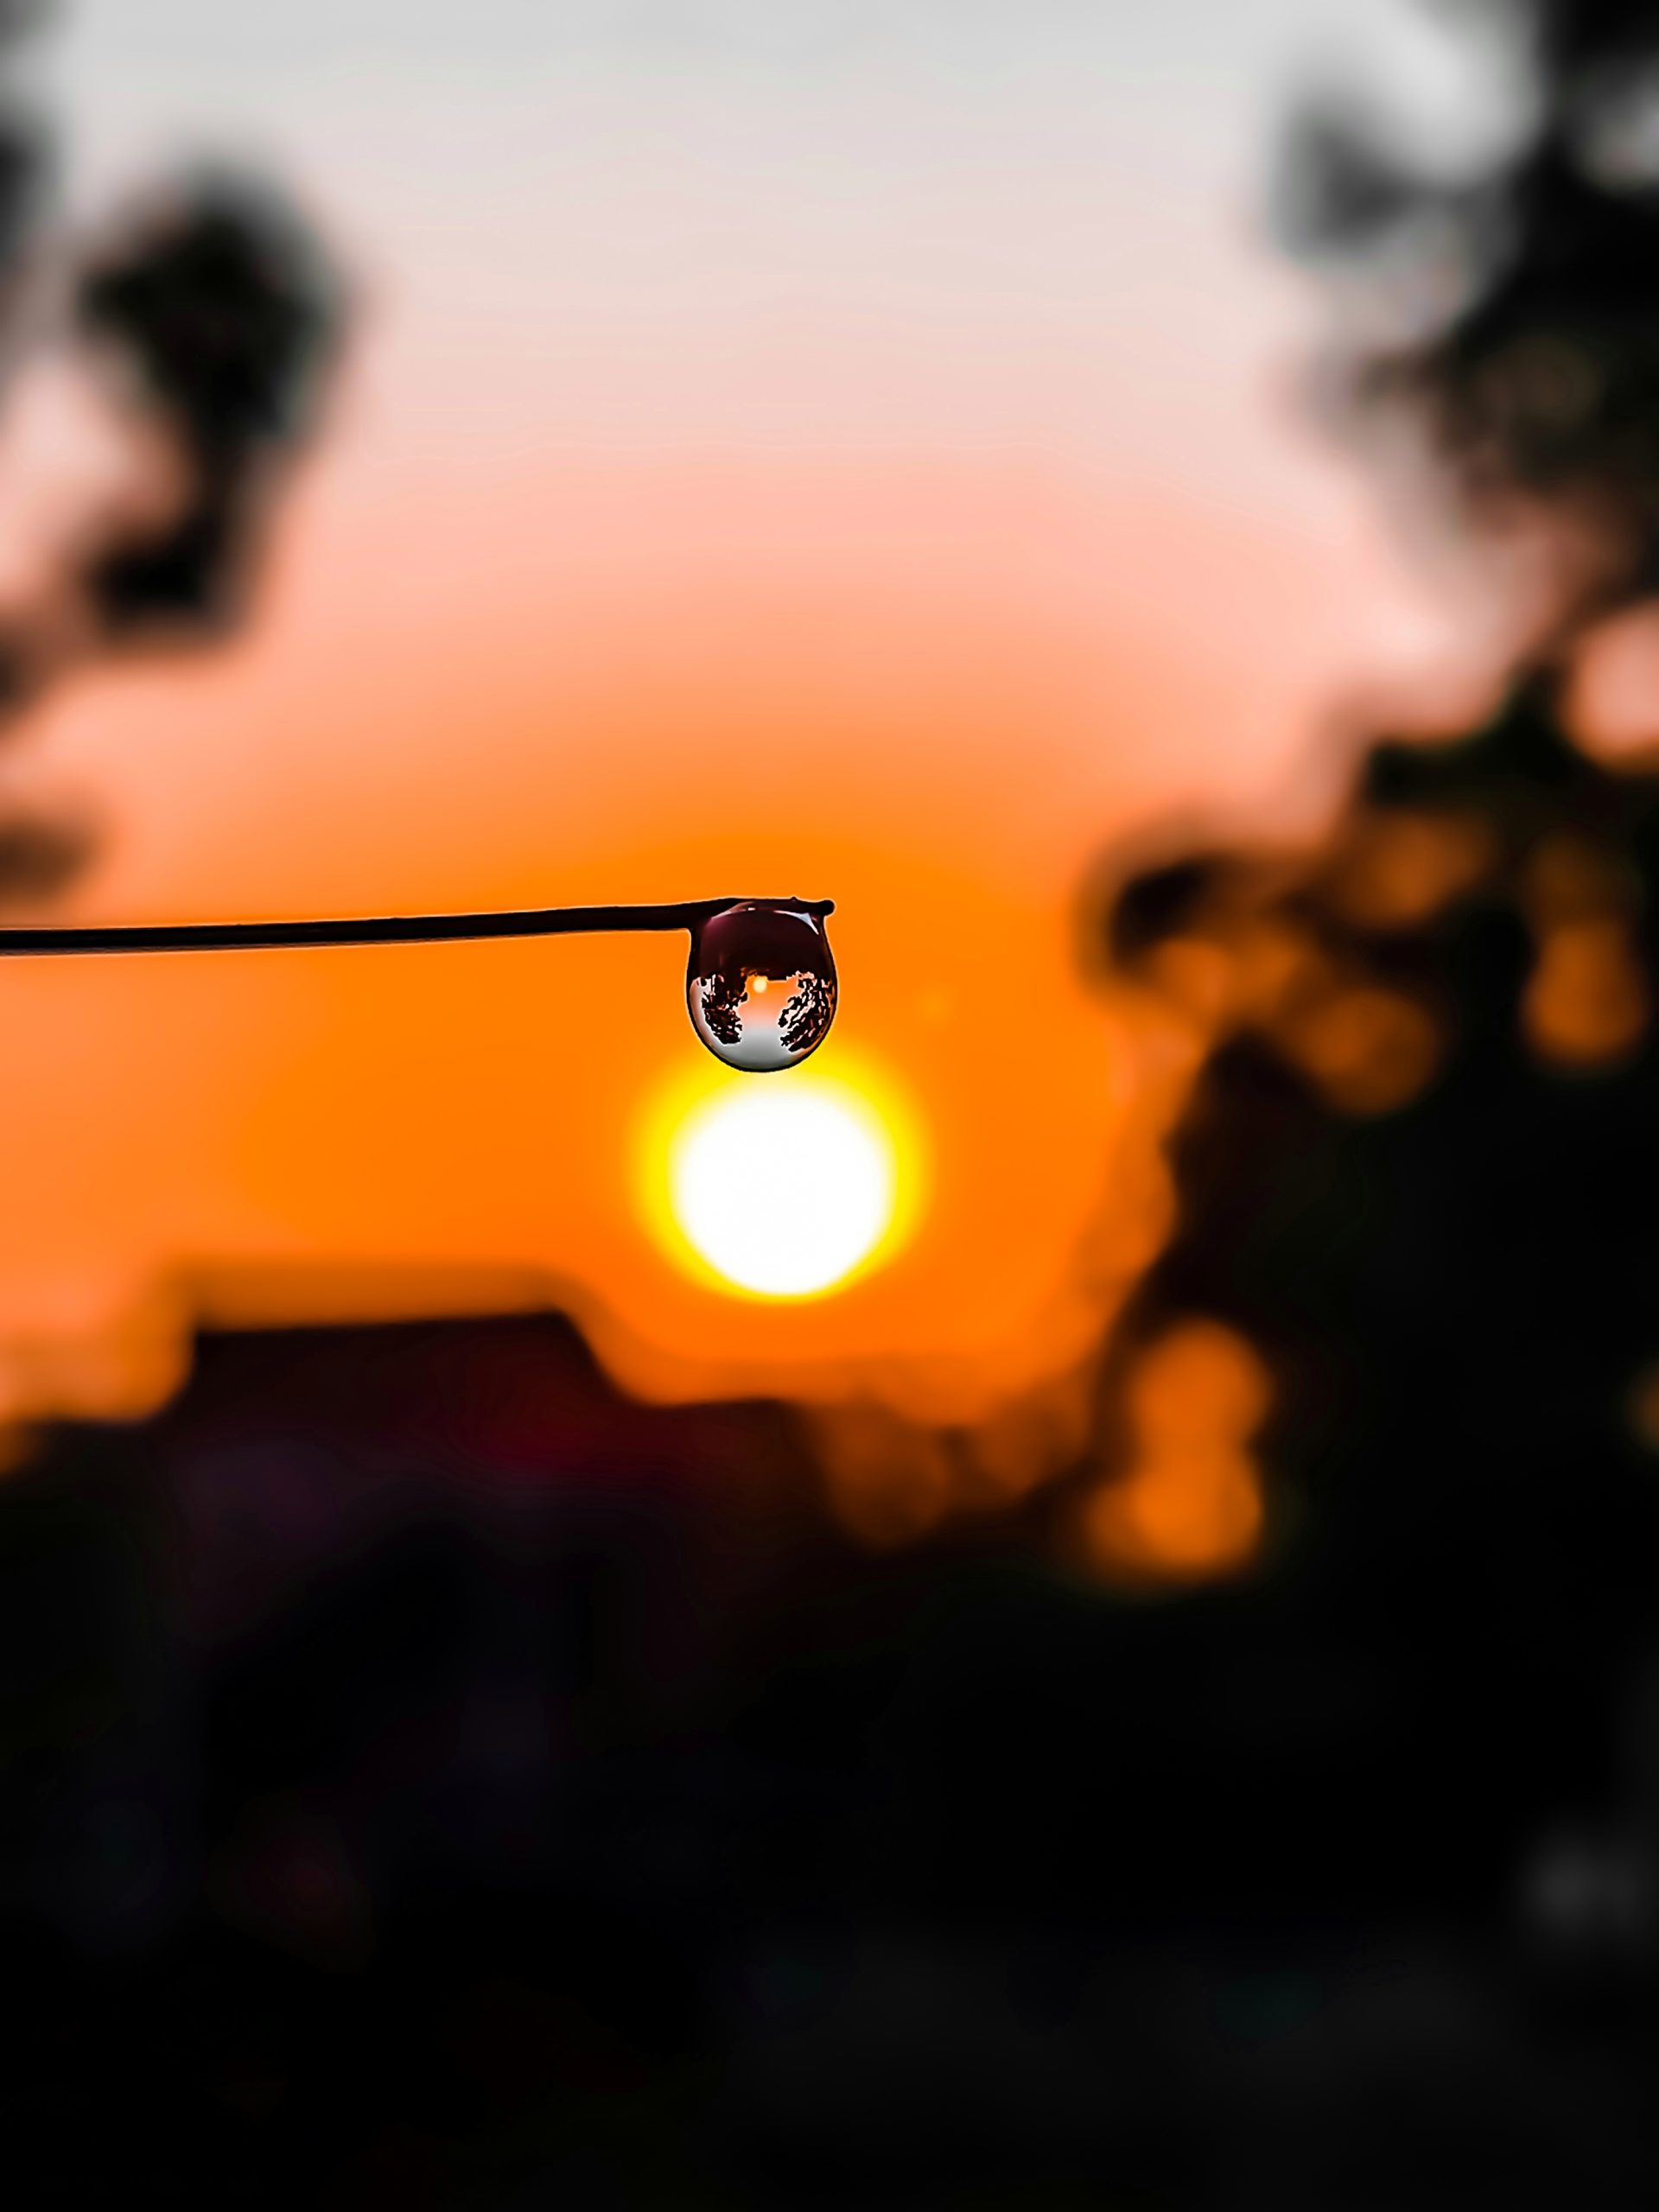 drop of water against setting sun